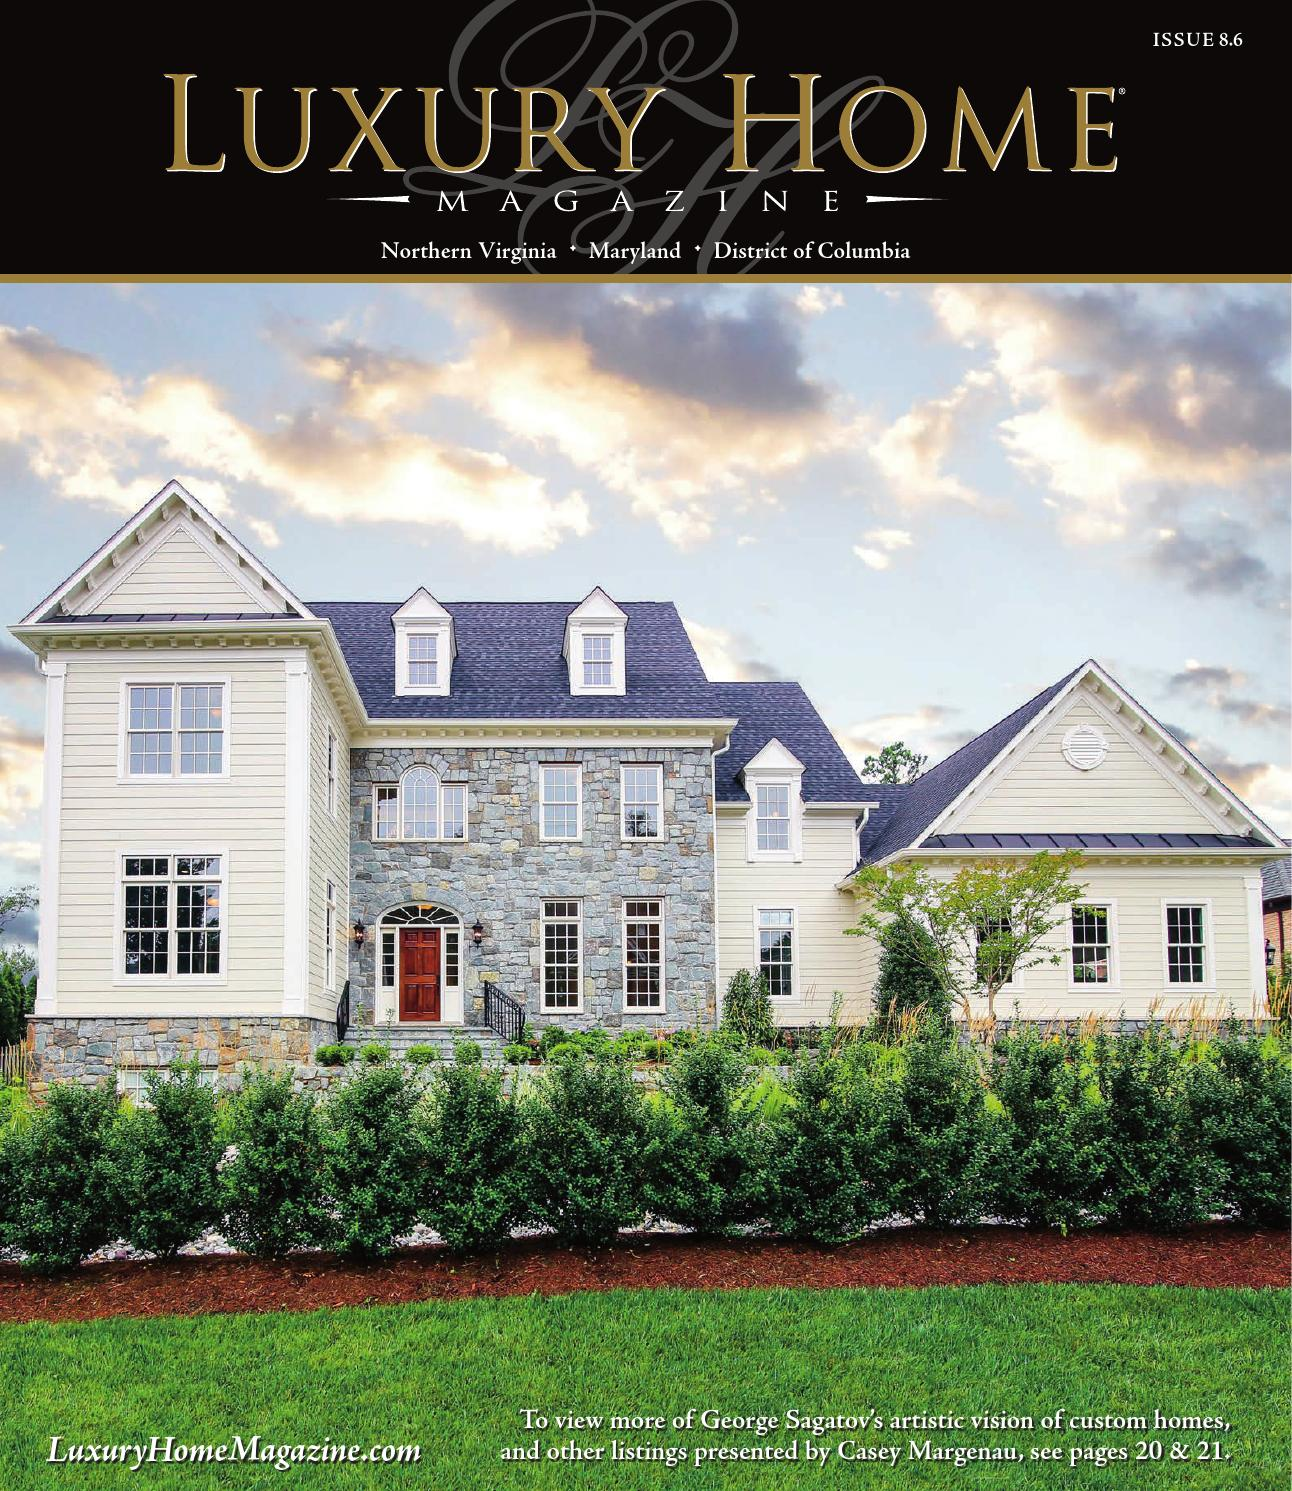 Home Magazine: Luxury Home Magazine Washington DC By Luxury Home Magazine